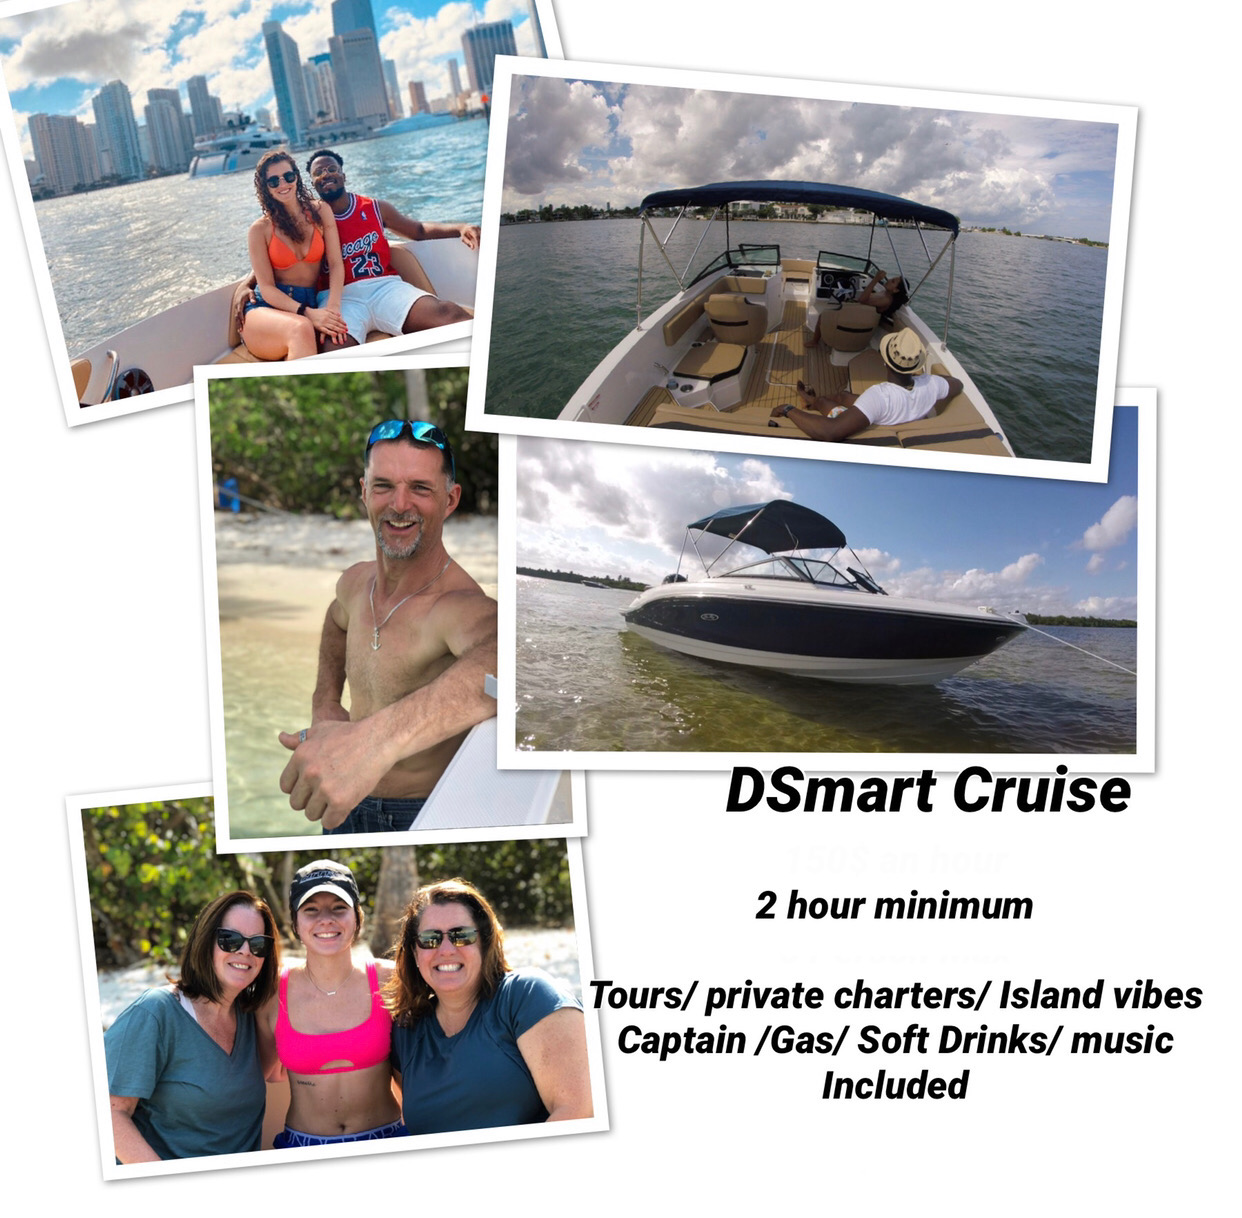 Go out and discover Miami with DSmart Cruise!